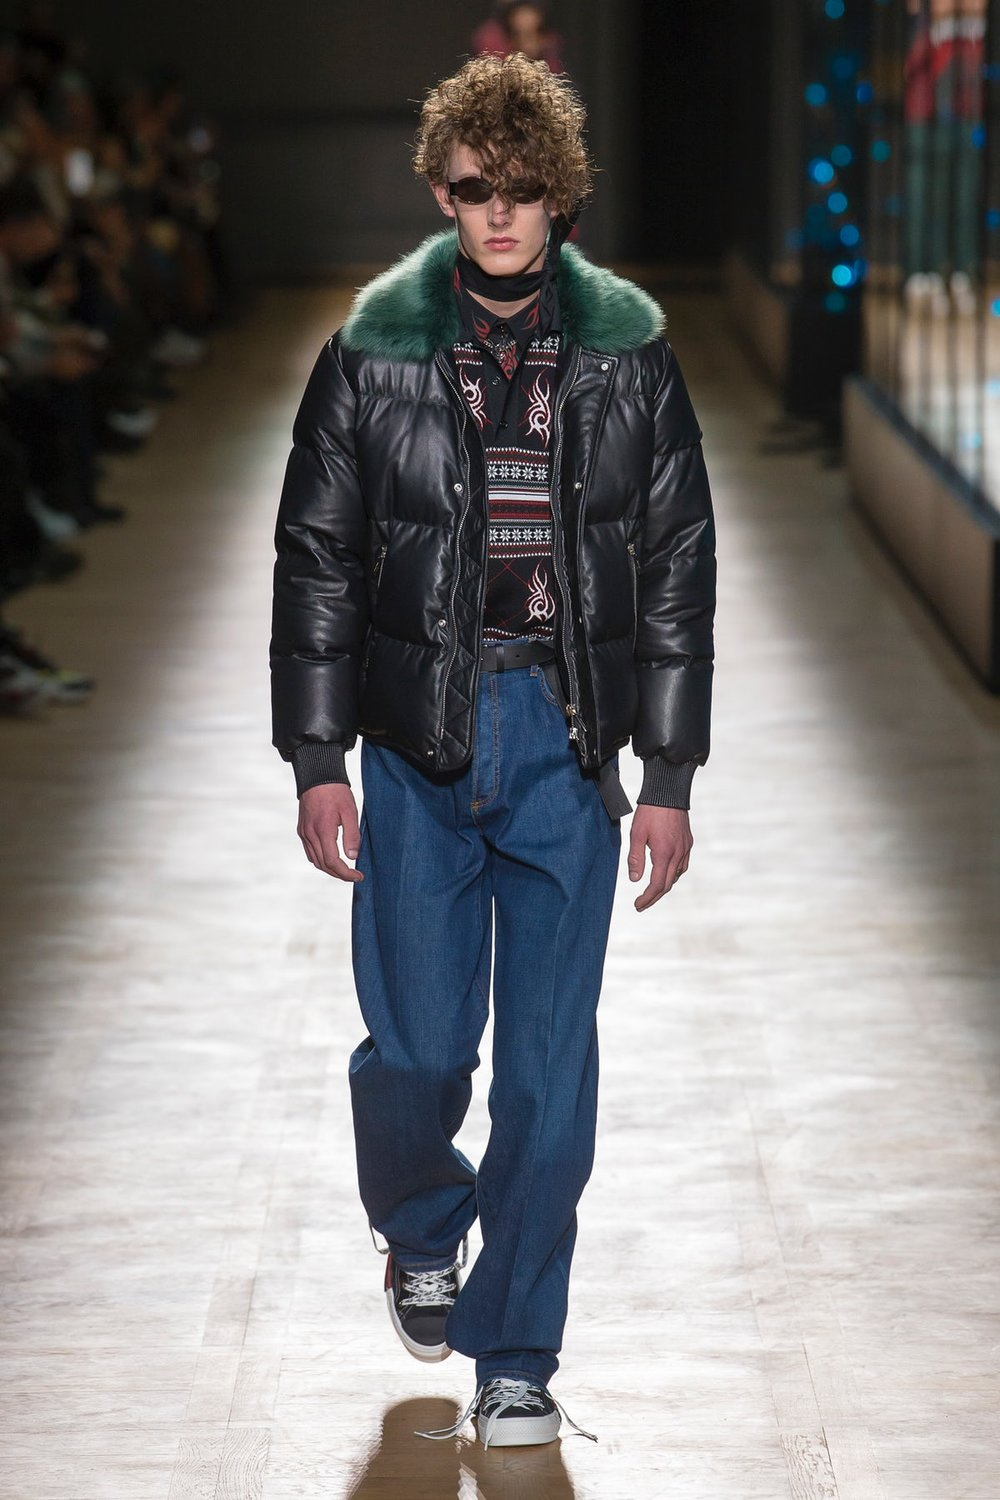 dior_homme_look_22_menswear_autumn_2018.jpeg